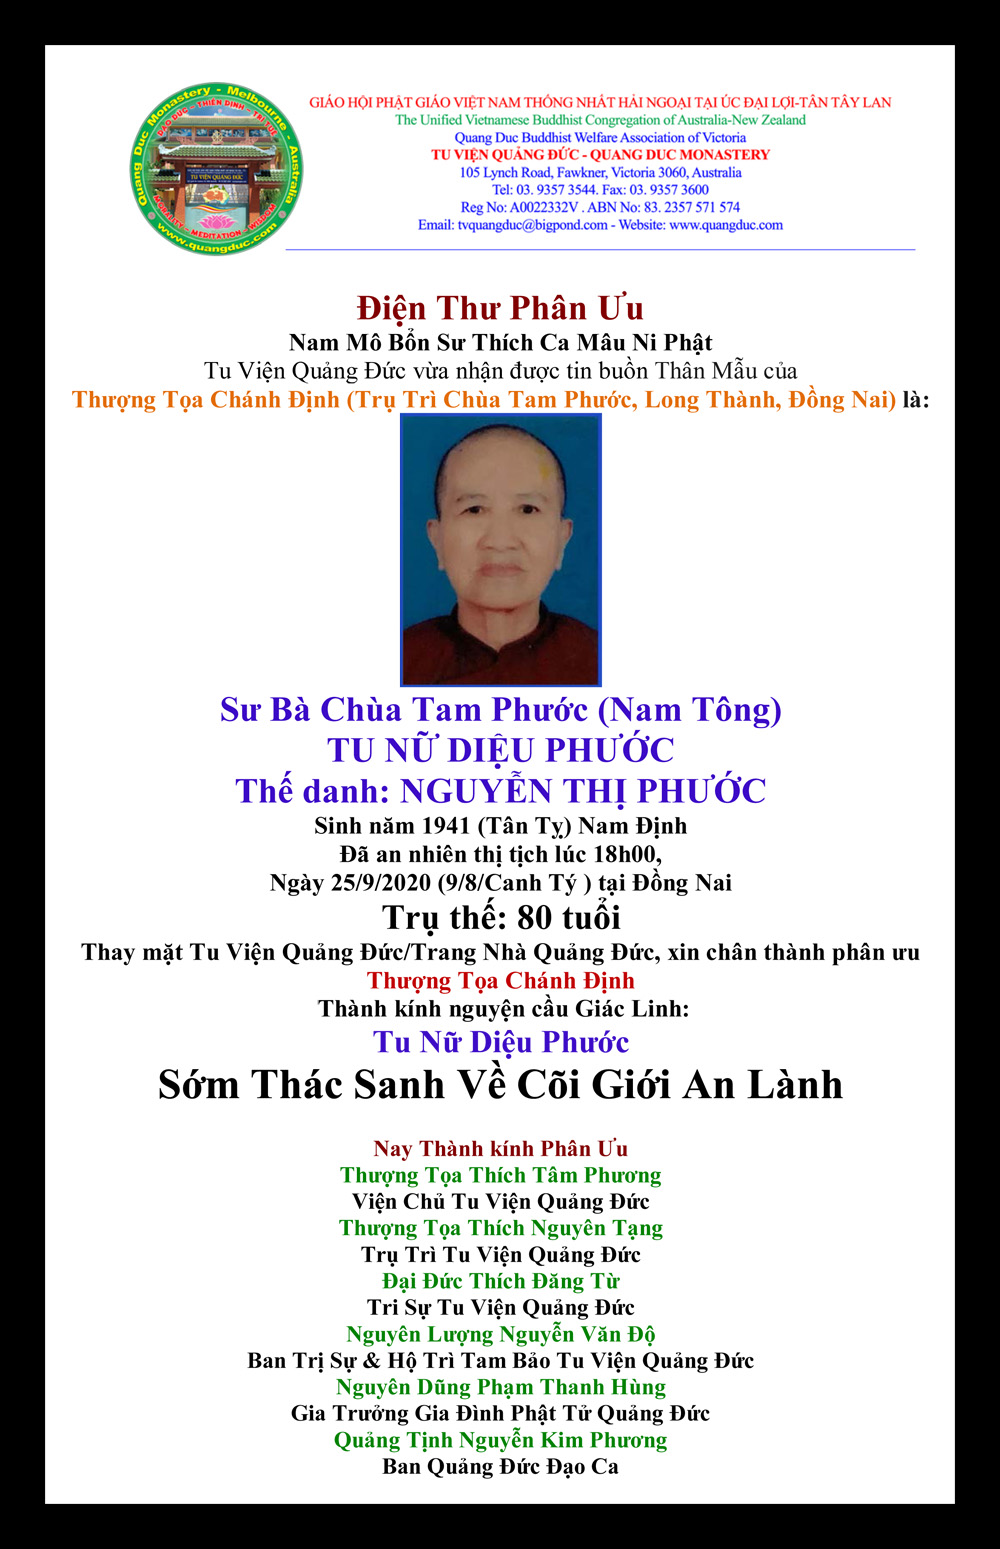 Dien Thu Phan uu_Thuong Toa Chanh Dinh-2020